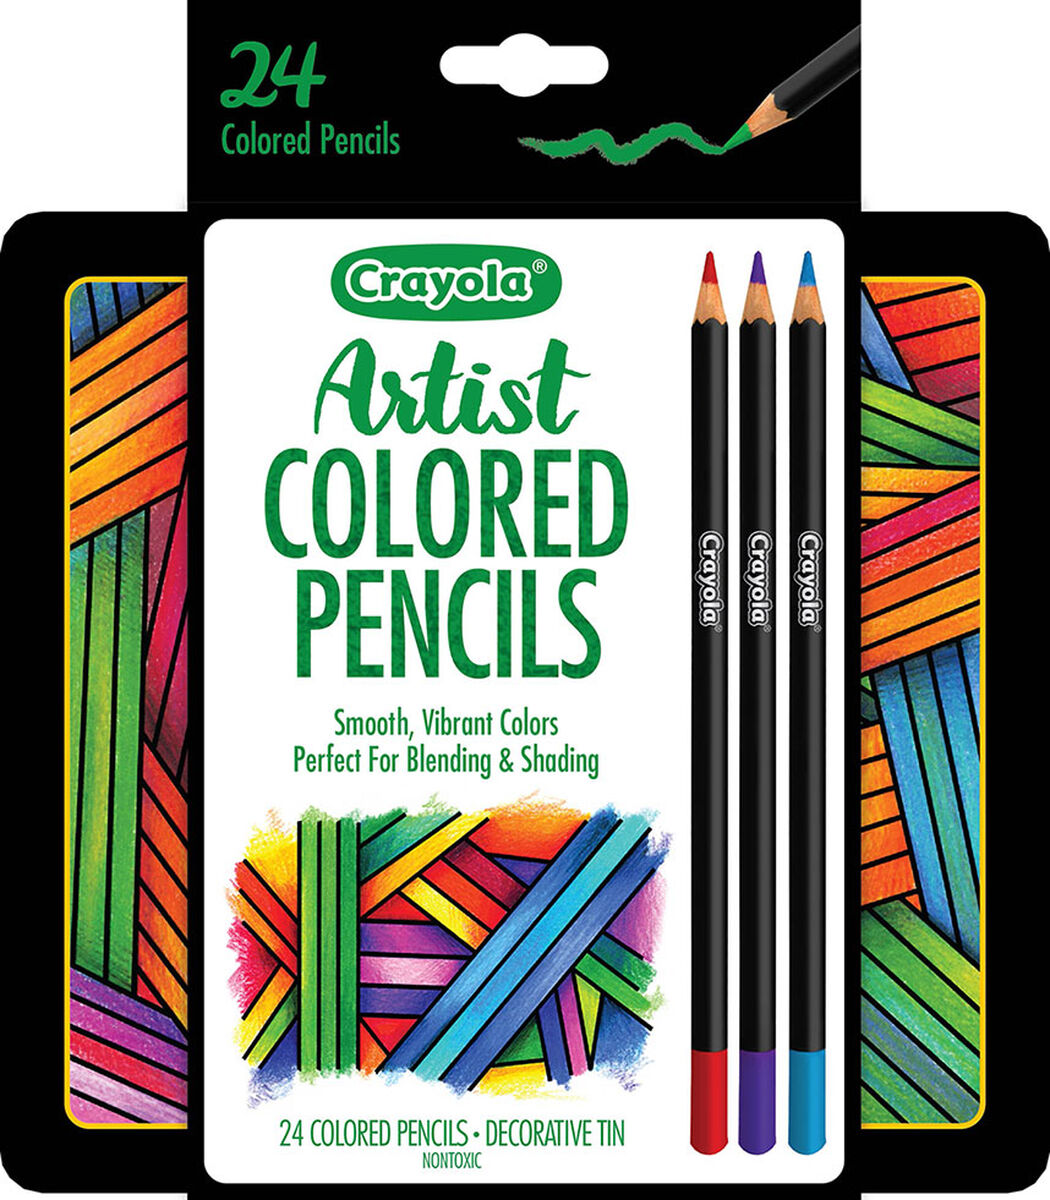 <p>Designed with premium soft gel cores, Crayola Artist Gel Colored Pencils offer exceptionally smooth laydown. Use these colored pencils to add details while drawing and for precision control while shading and blending. </p>